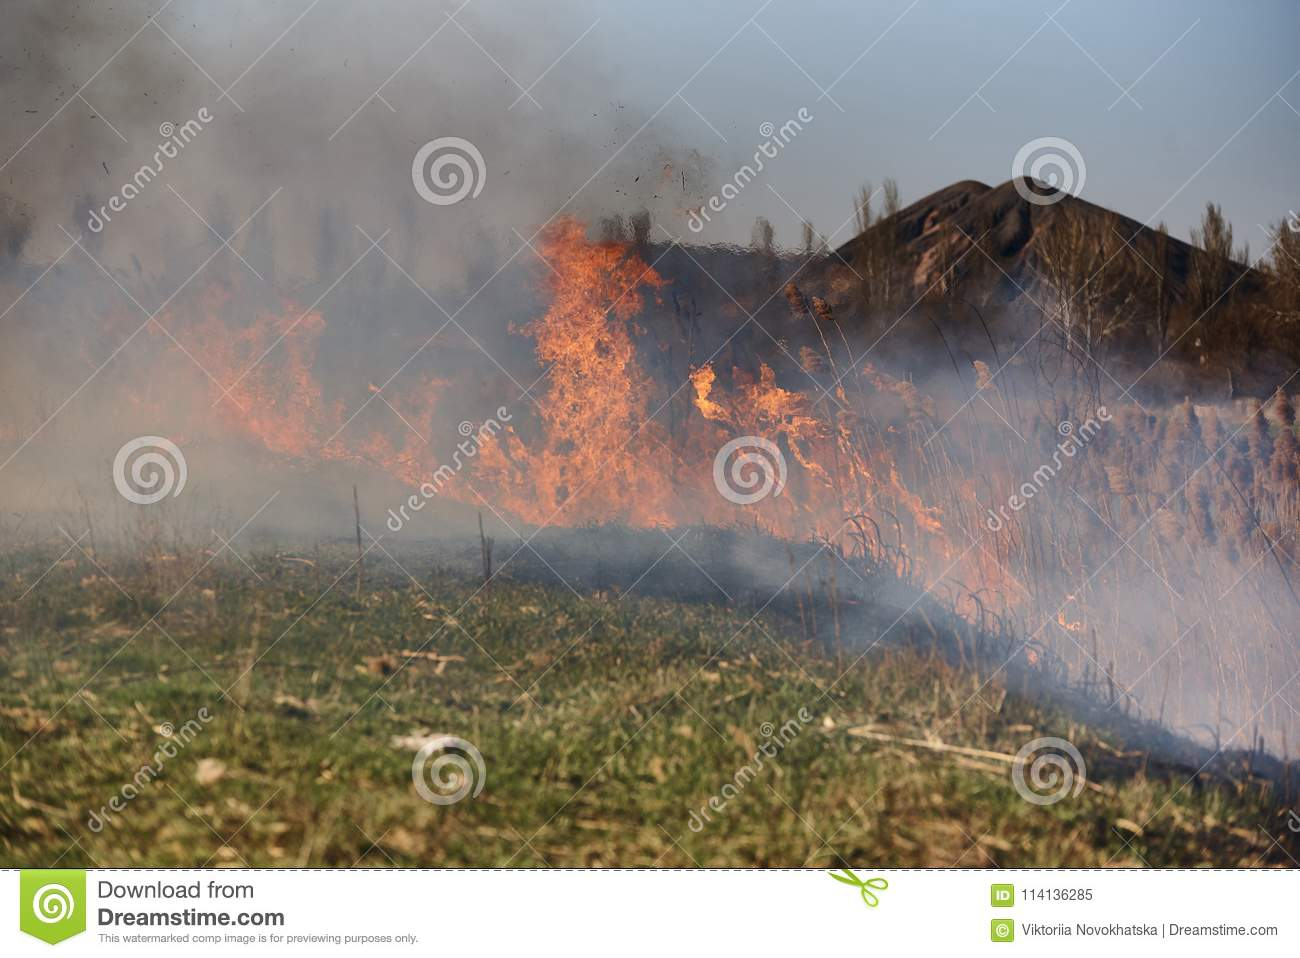 Spontaneous uncontrolled spread of fire